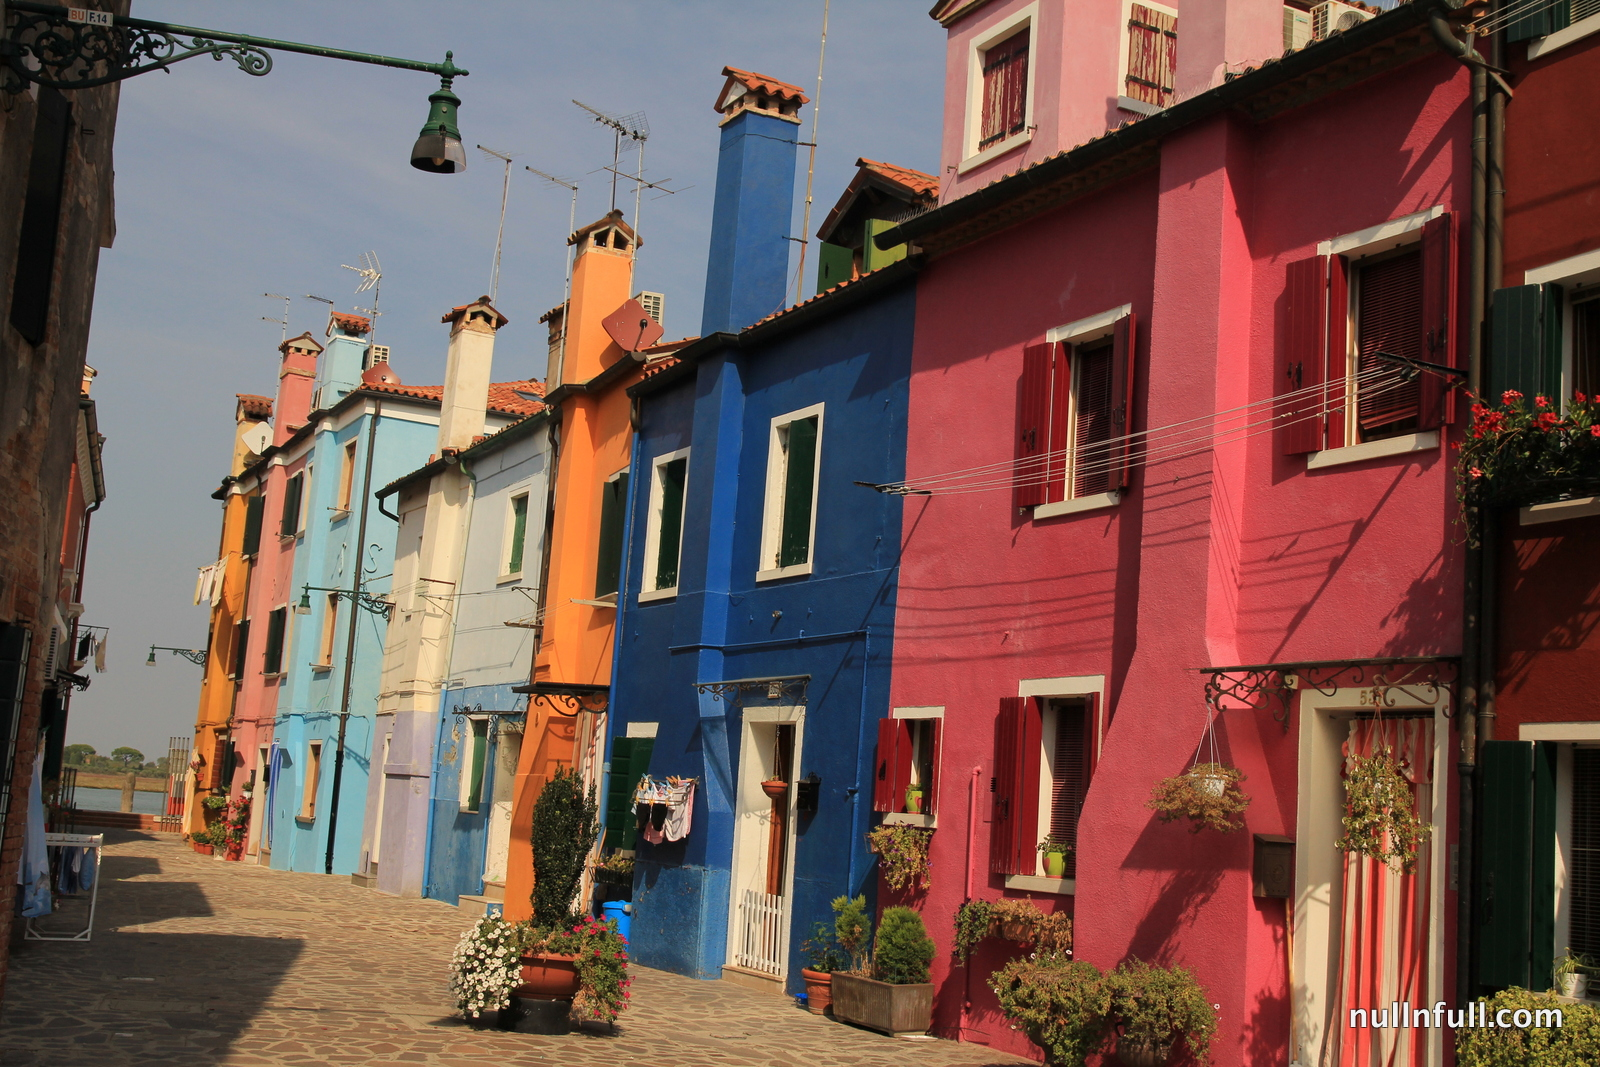 Burano, the most colorful island in Italy